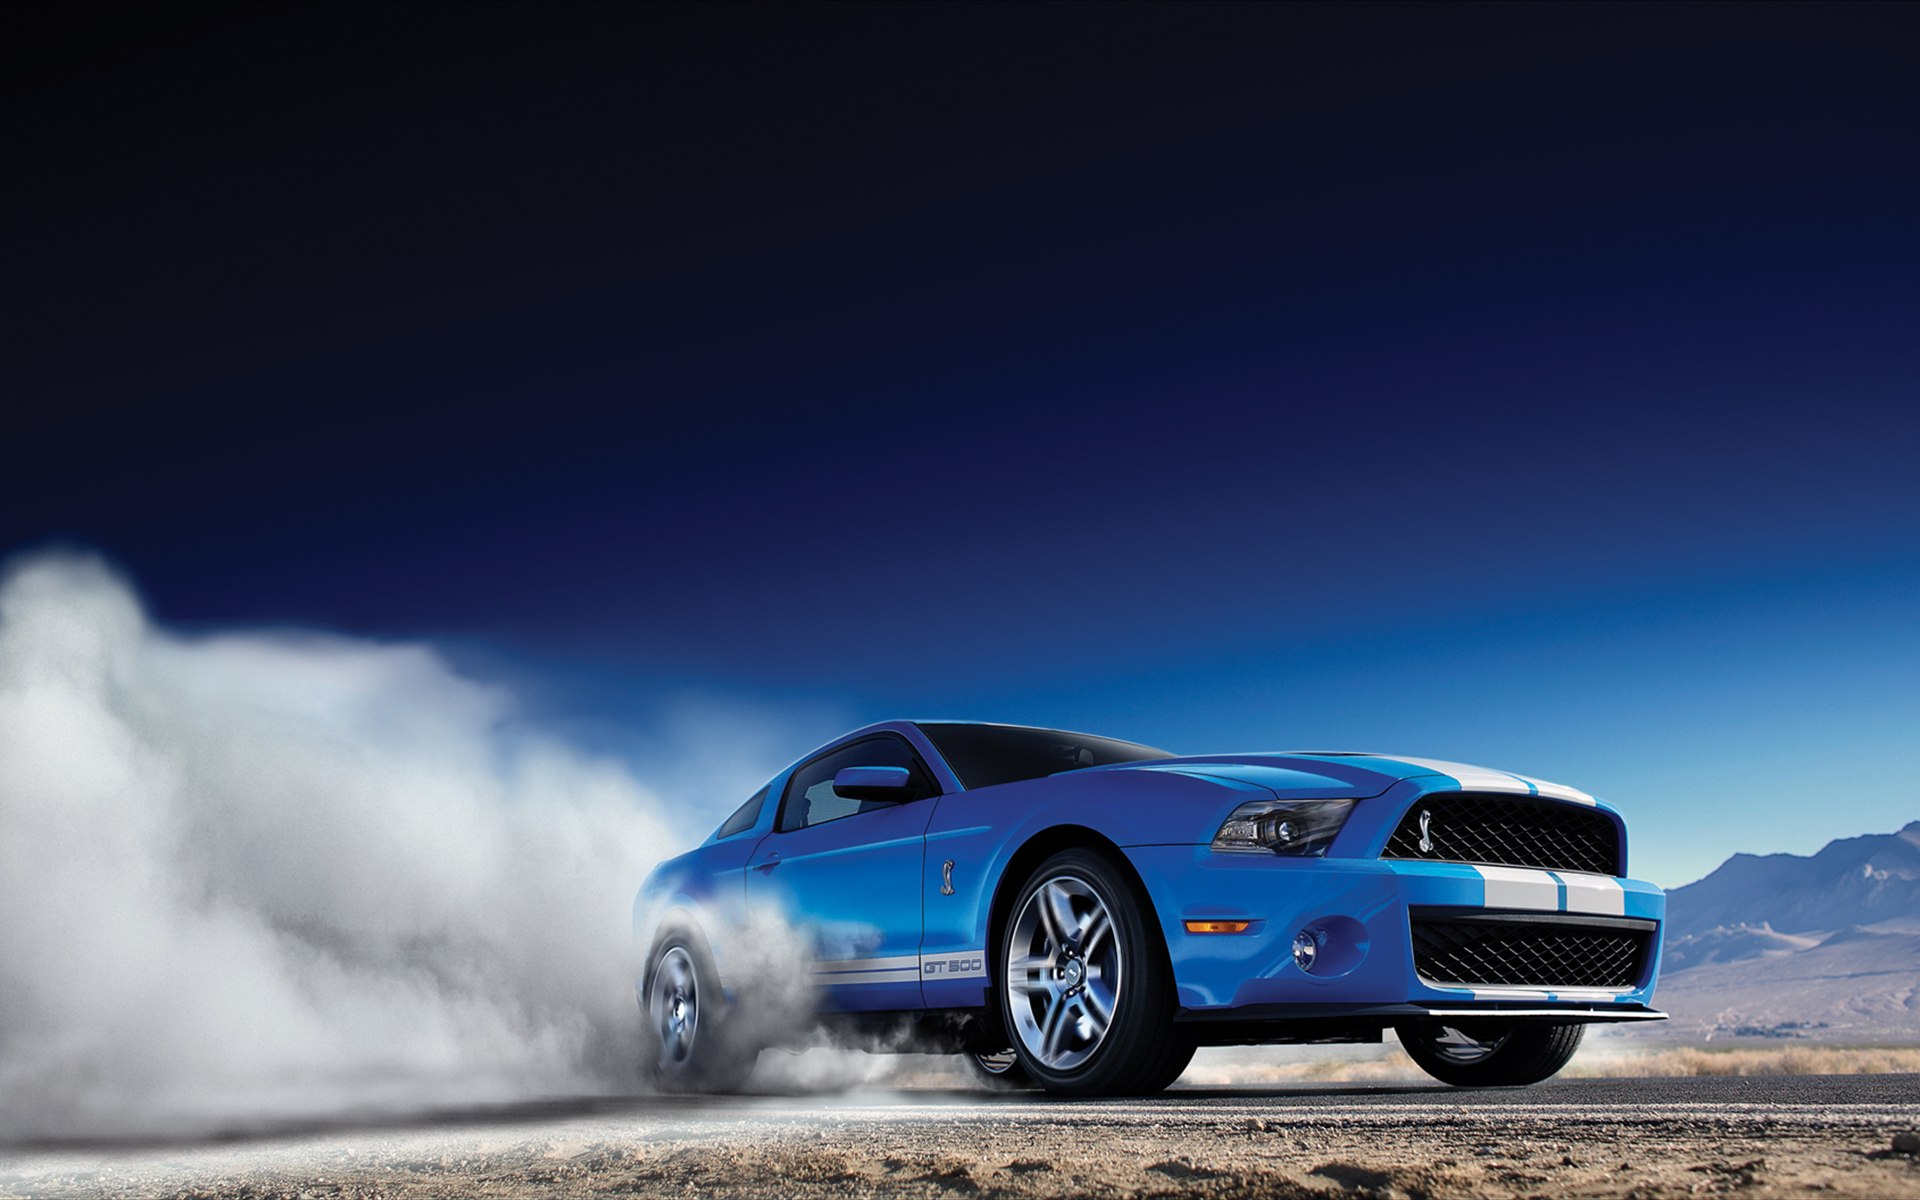 Ford Shelby GT500 Wallpaper HD Background